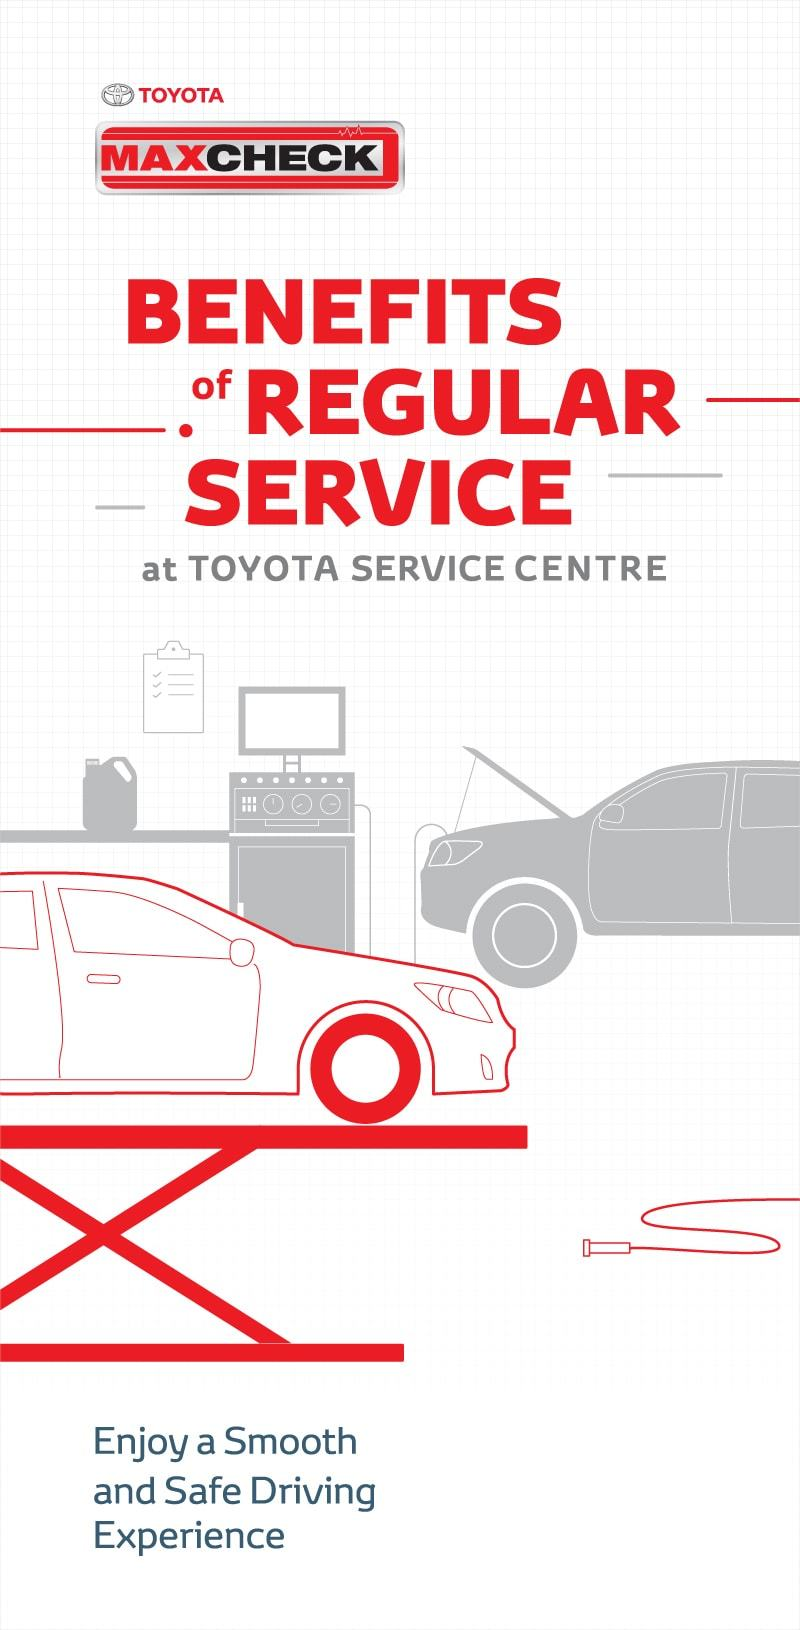 Toyota Malaysia Careplus 2007 Mazda 626 2 0 Engine Parts Diagram Periodic Maintenance